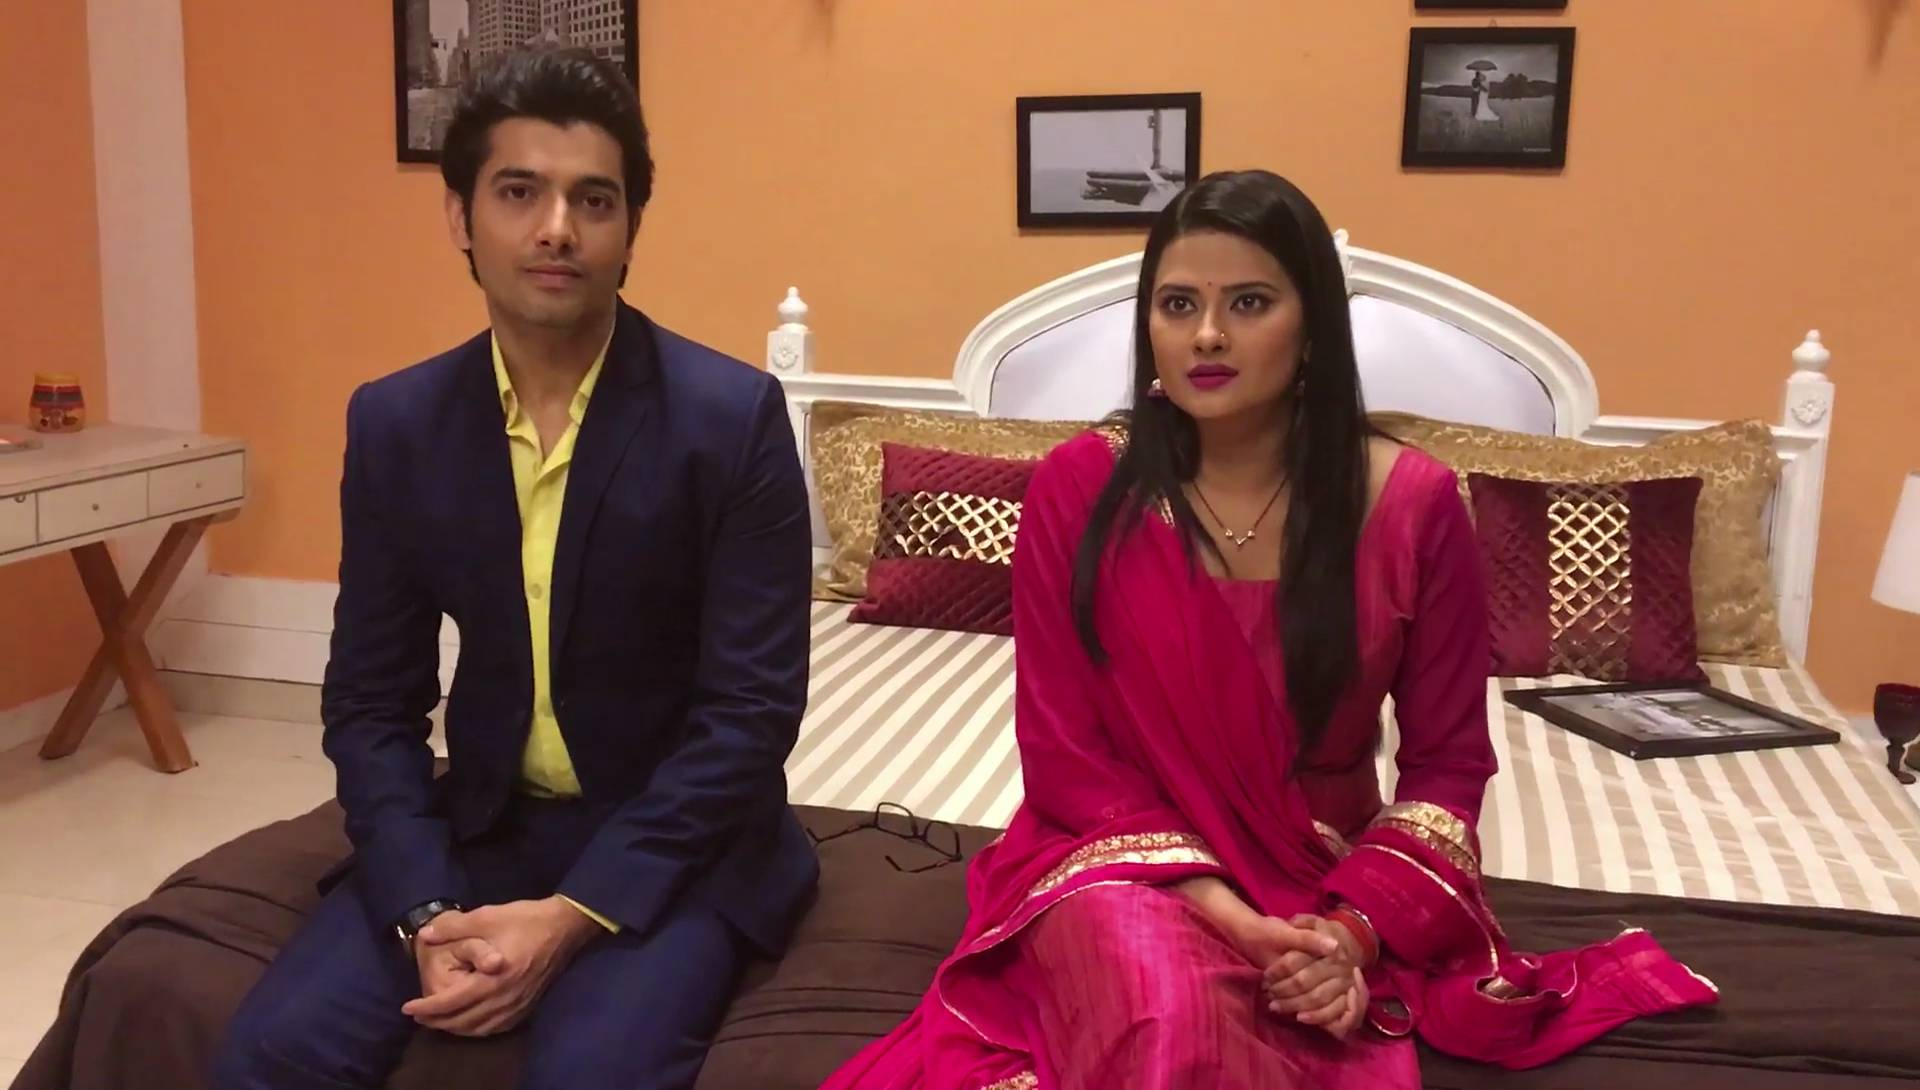 An exclusive interview with Sharad Malhotra and Kratika Sengar from 'Kasam'